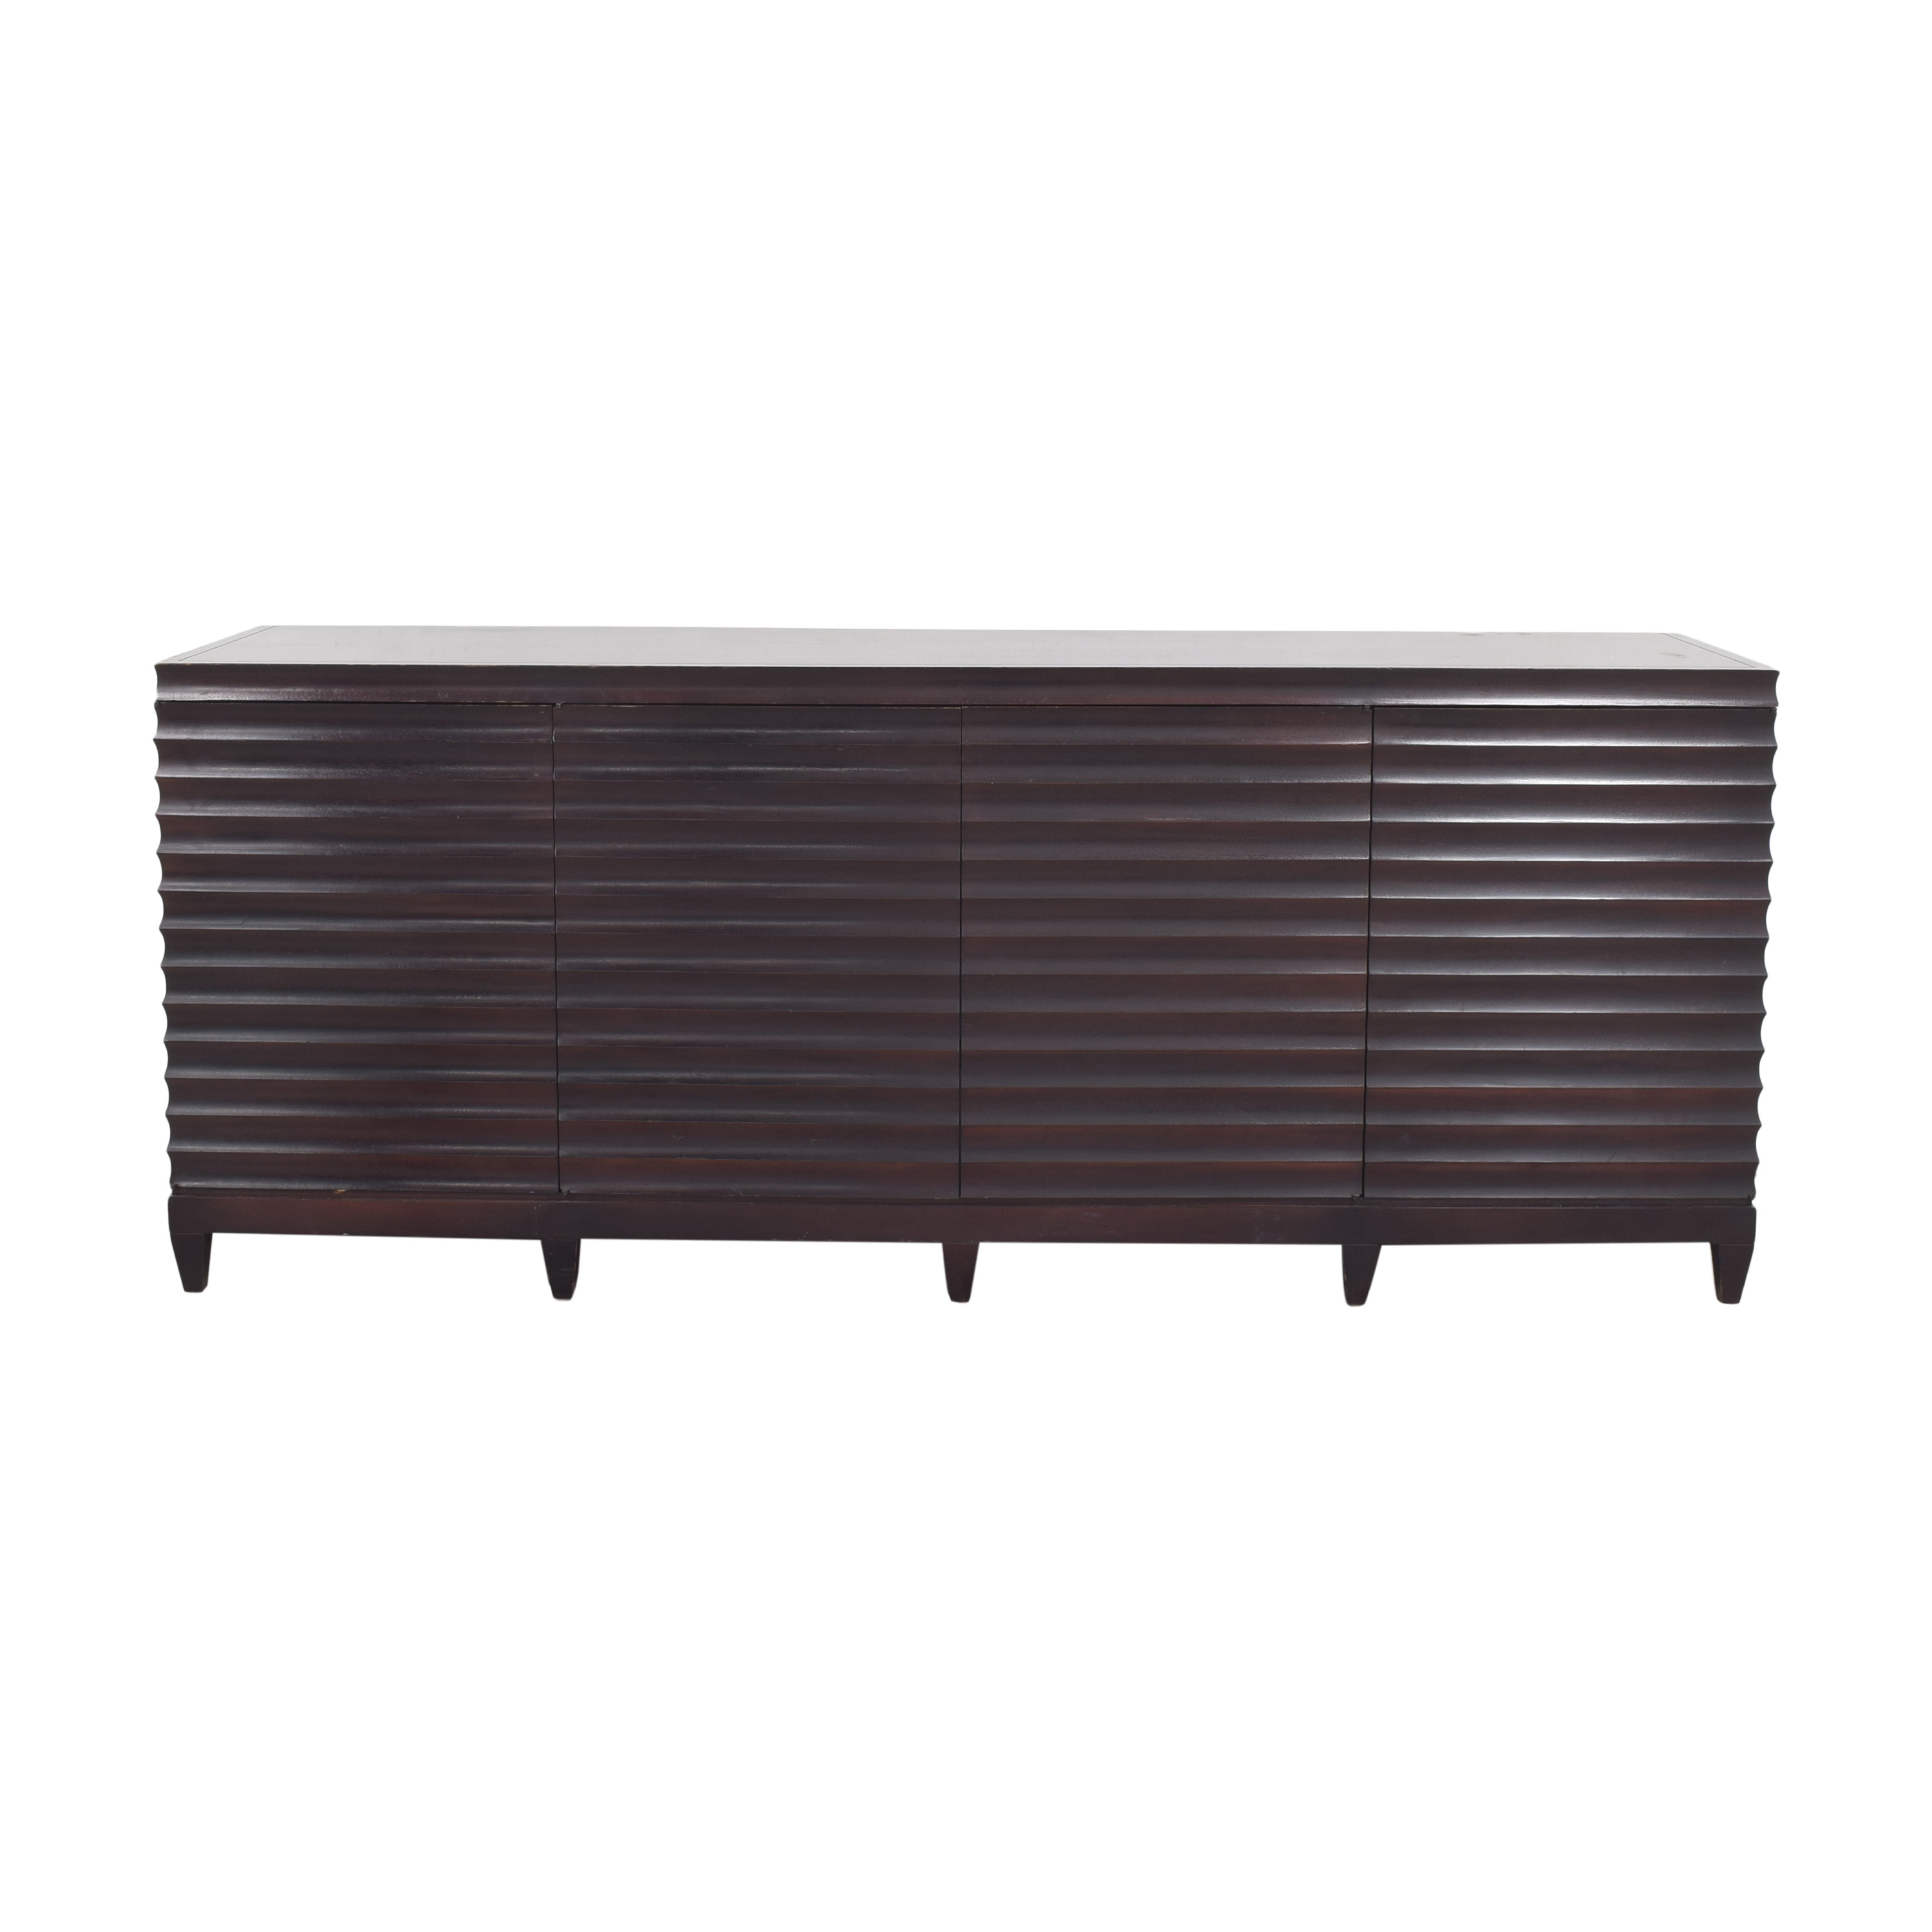 Baker Furniture Baker Furniture by Barbara Barry Fluted Low Cabinet dark brown